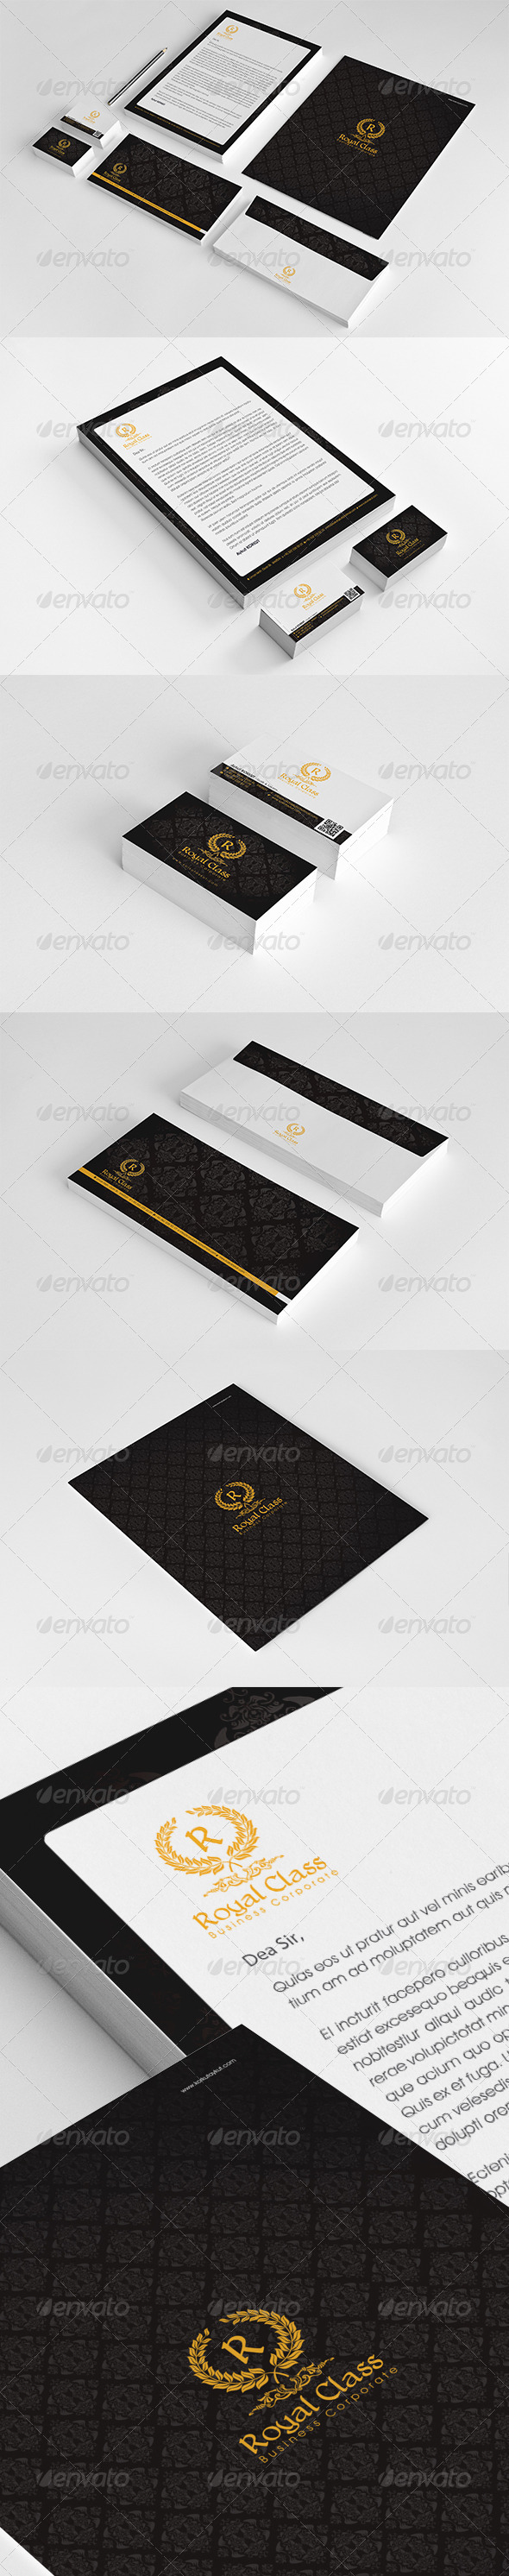 Royal Class Corporate Identity Package v2 - Stationery Print Templates